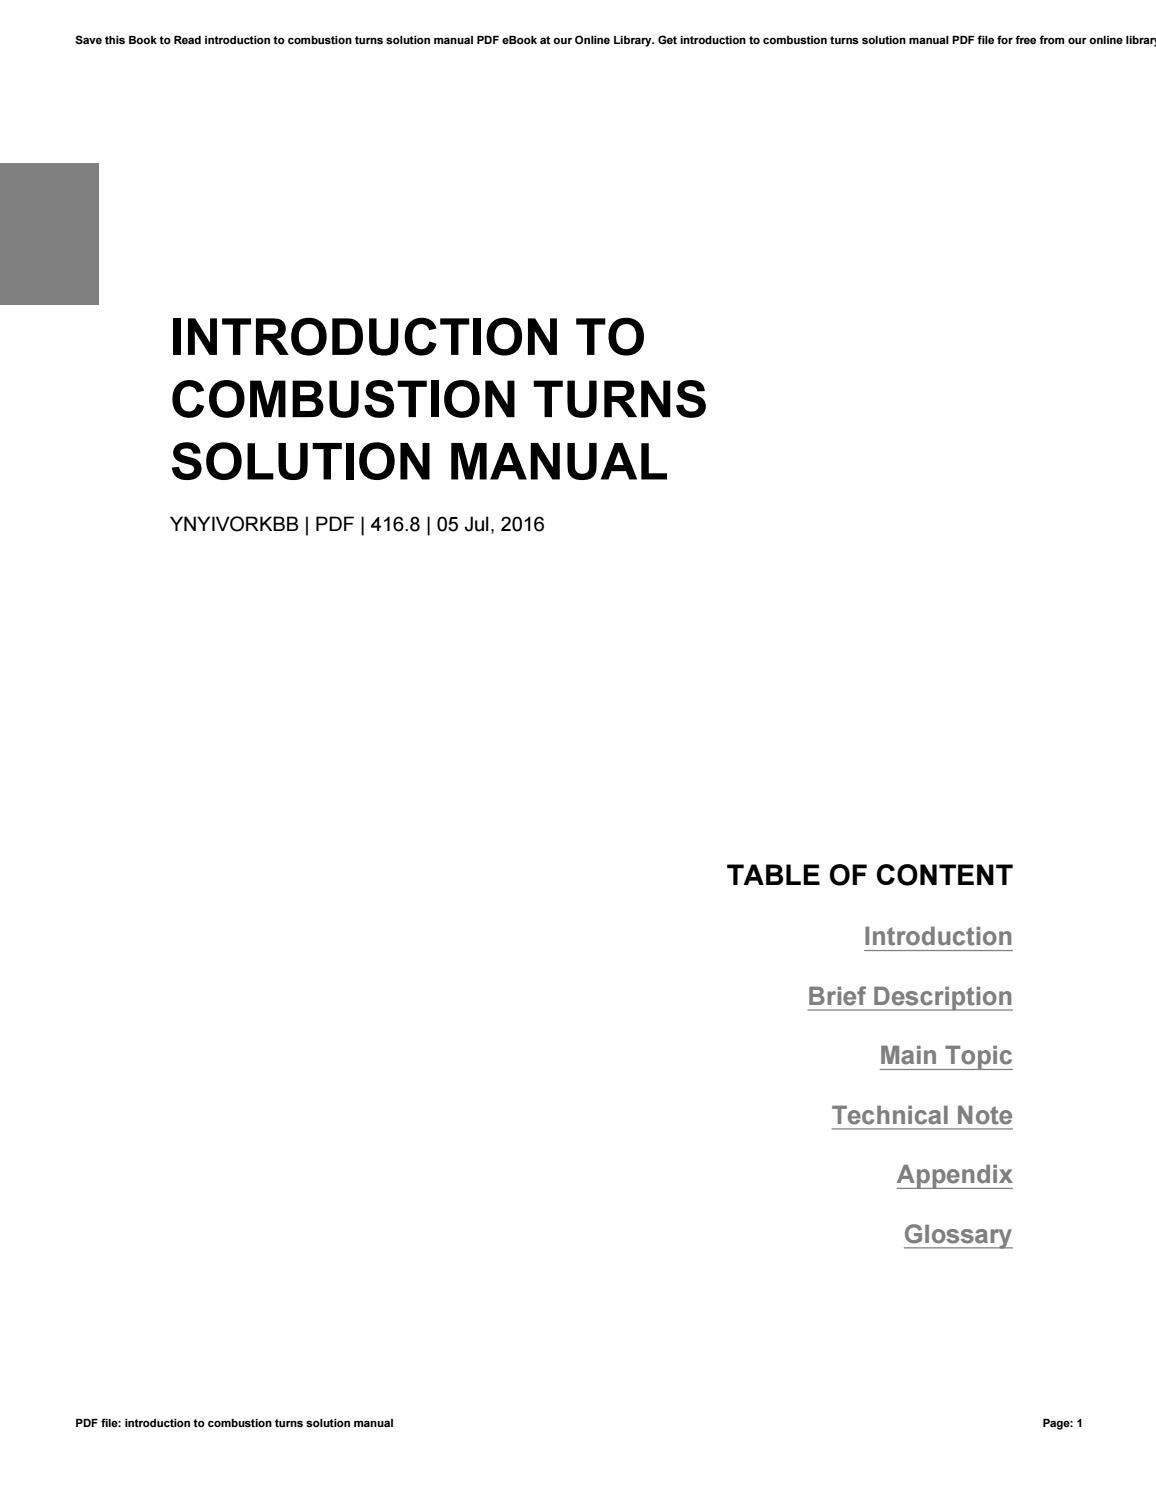 Introduction to combustion turns solution manual by JackiePeak4295 - issuu